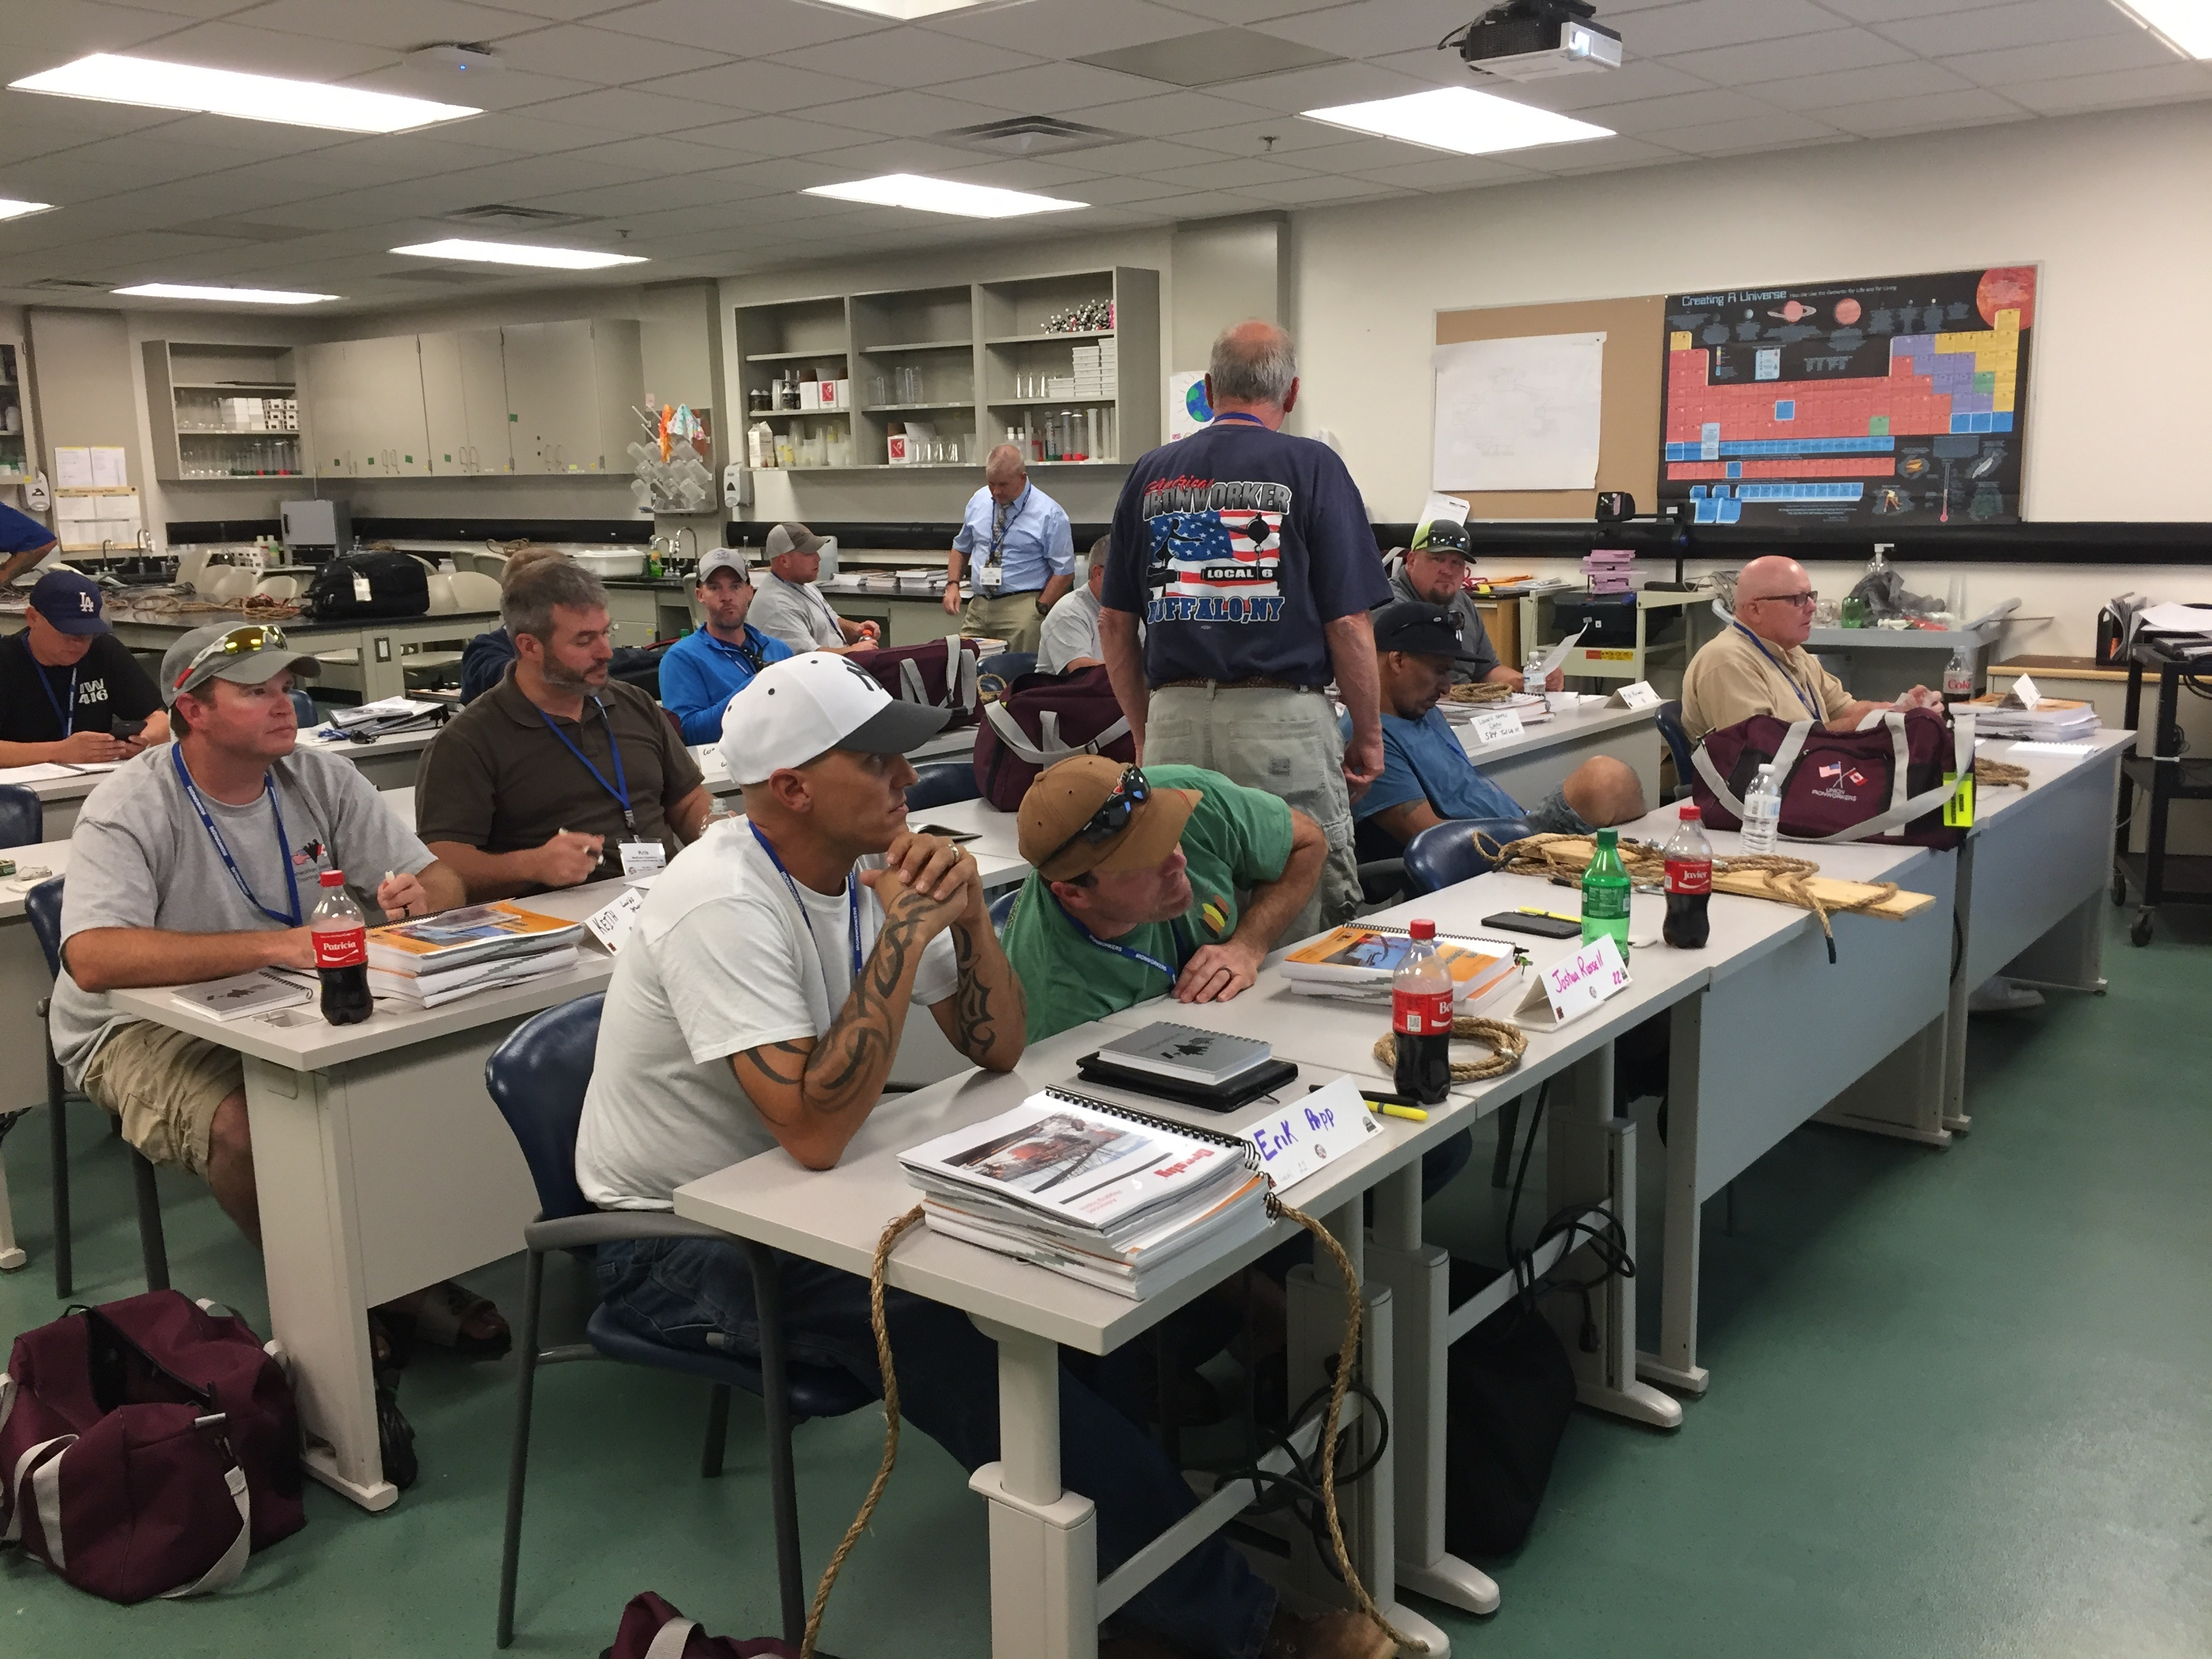 Crosby teaches at Ironworkers Union Instructor Training Program